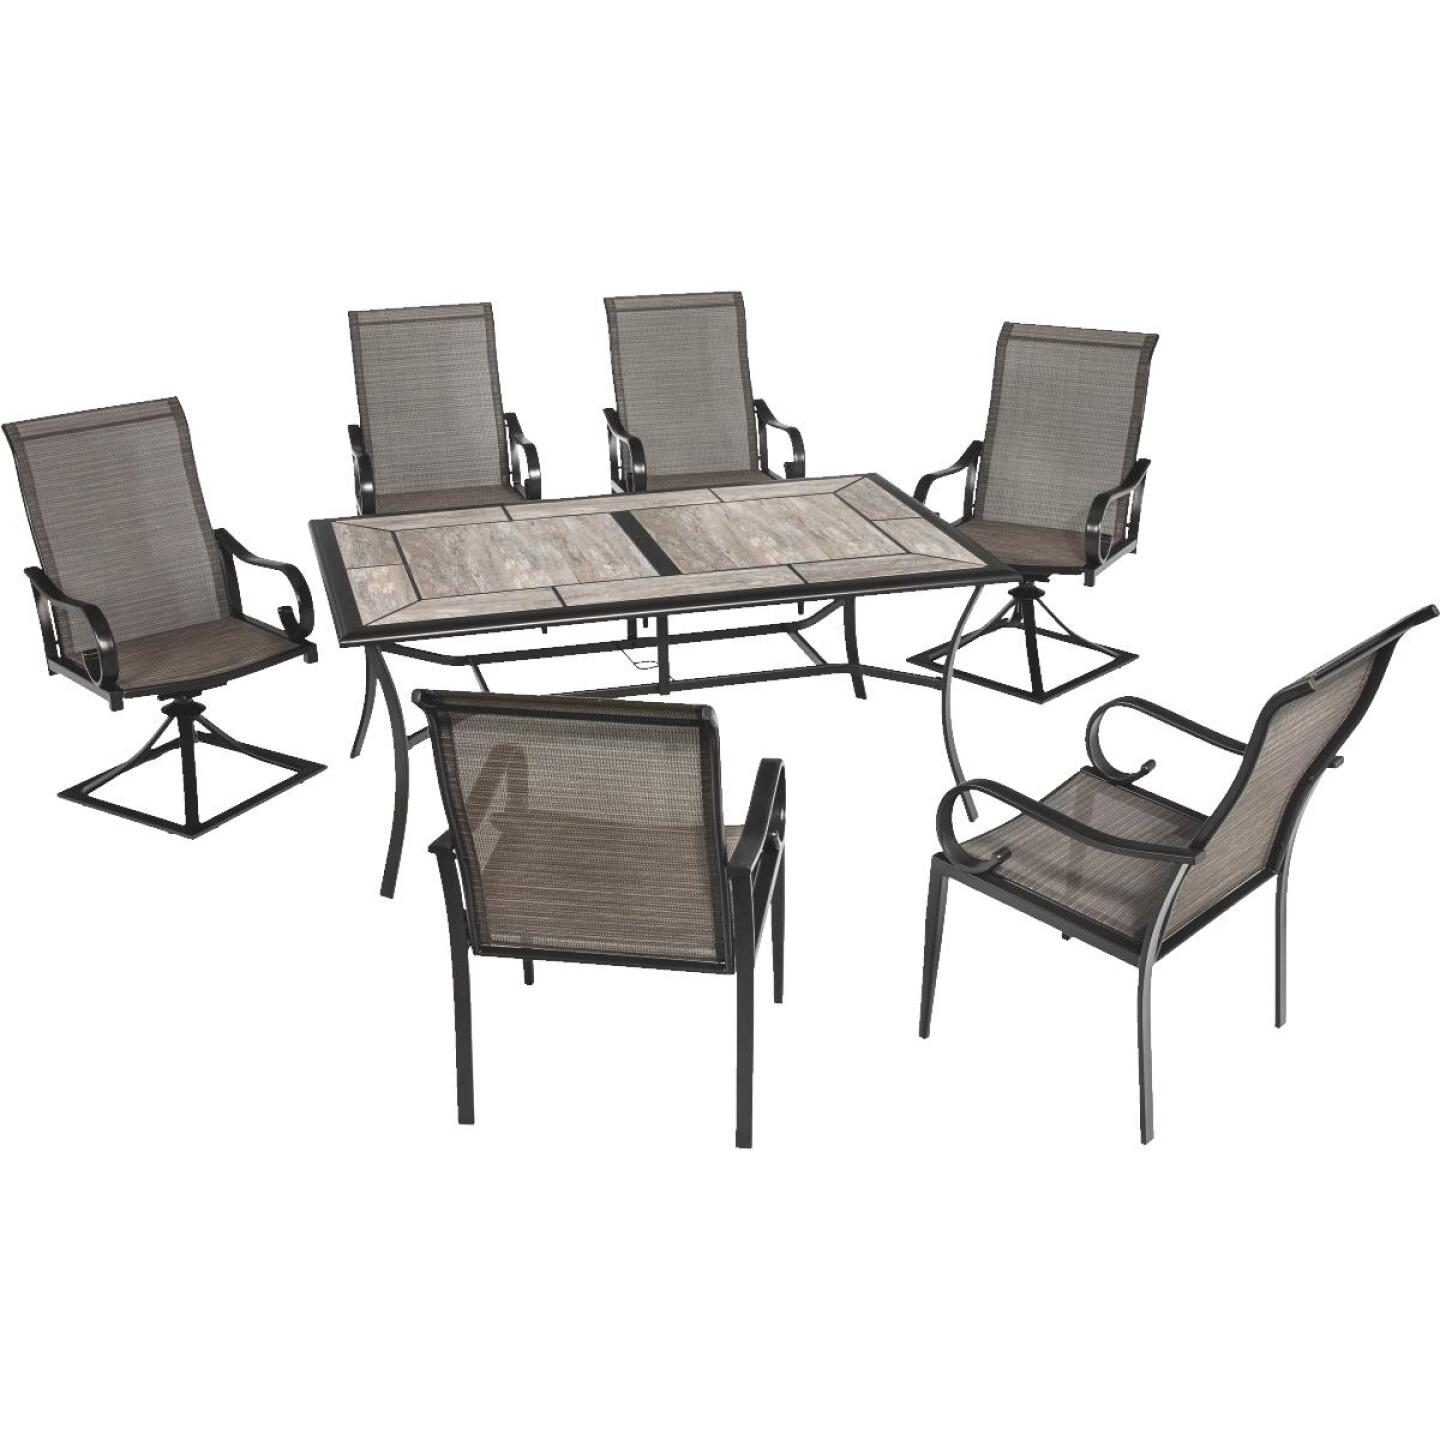 Outdoor Expressions Berkshire 7-Piece Dining Set Image 143